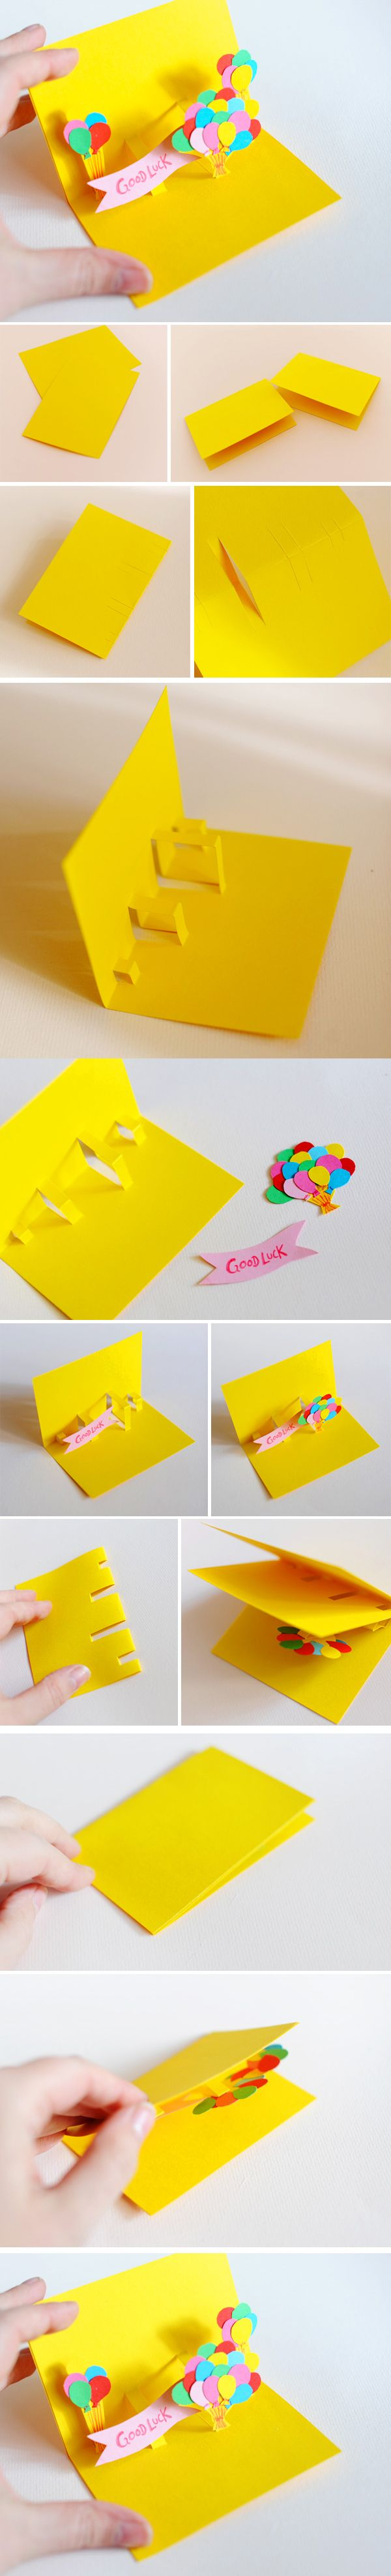 5 DIY Happy Birthday Cards Ideas | DIY Creative Ideas